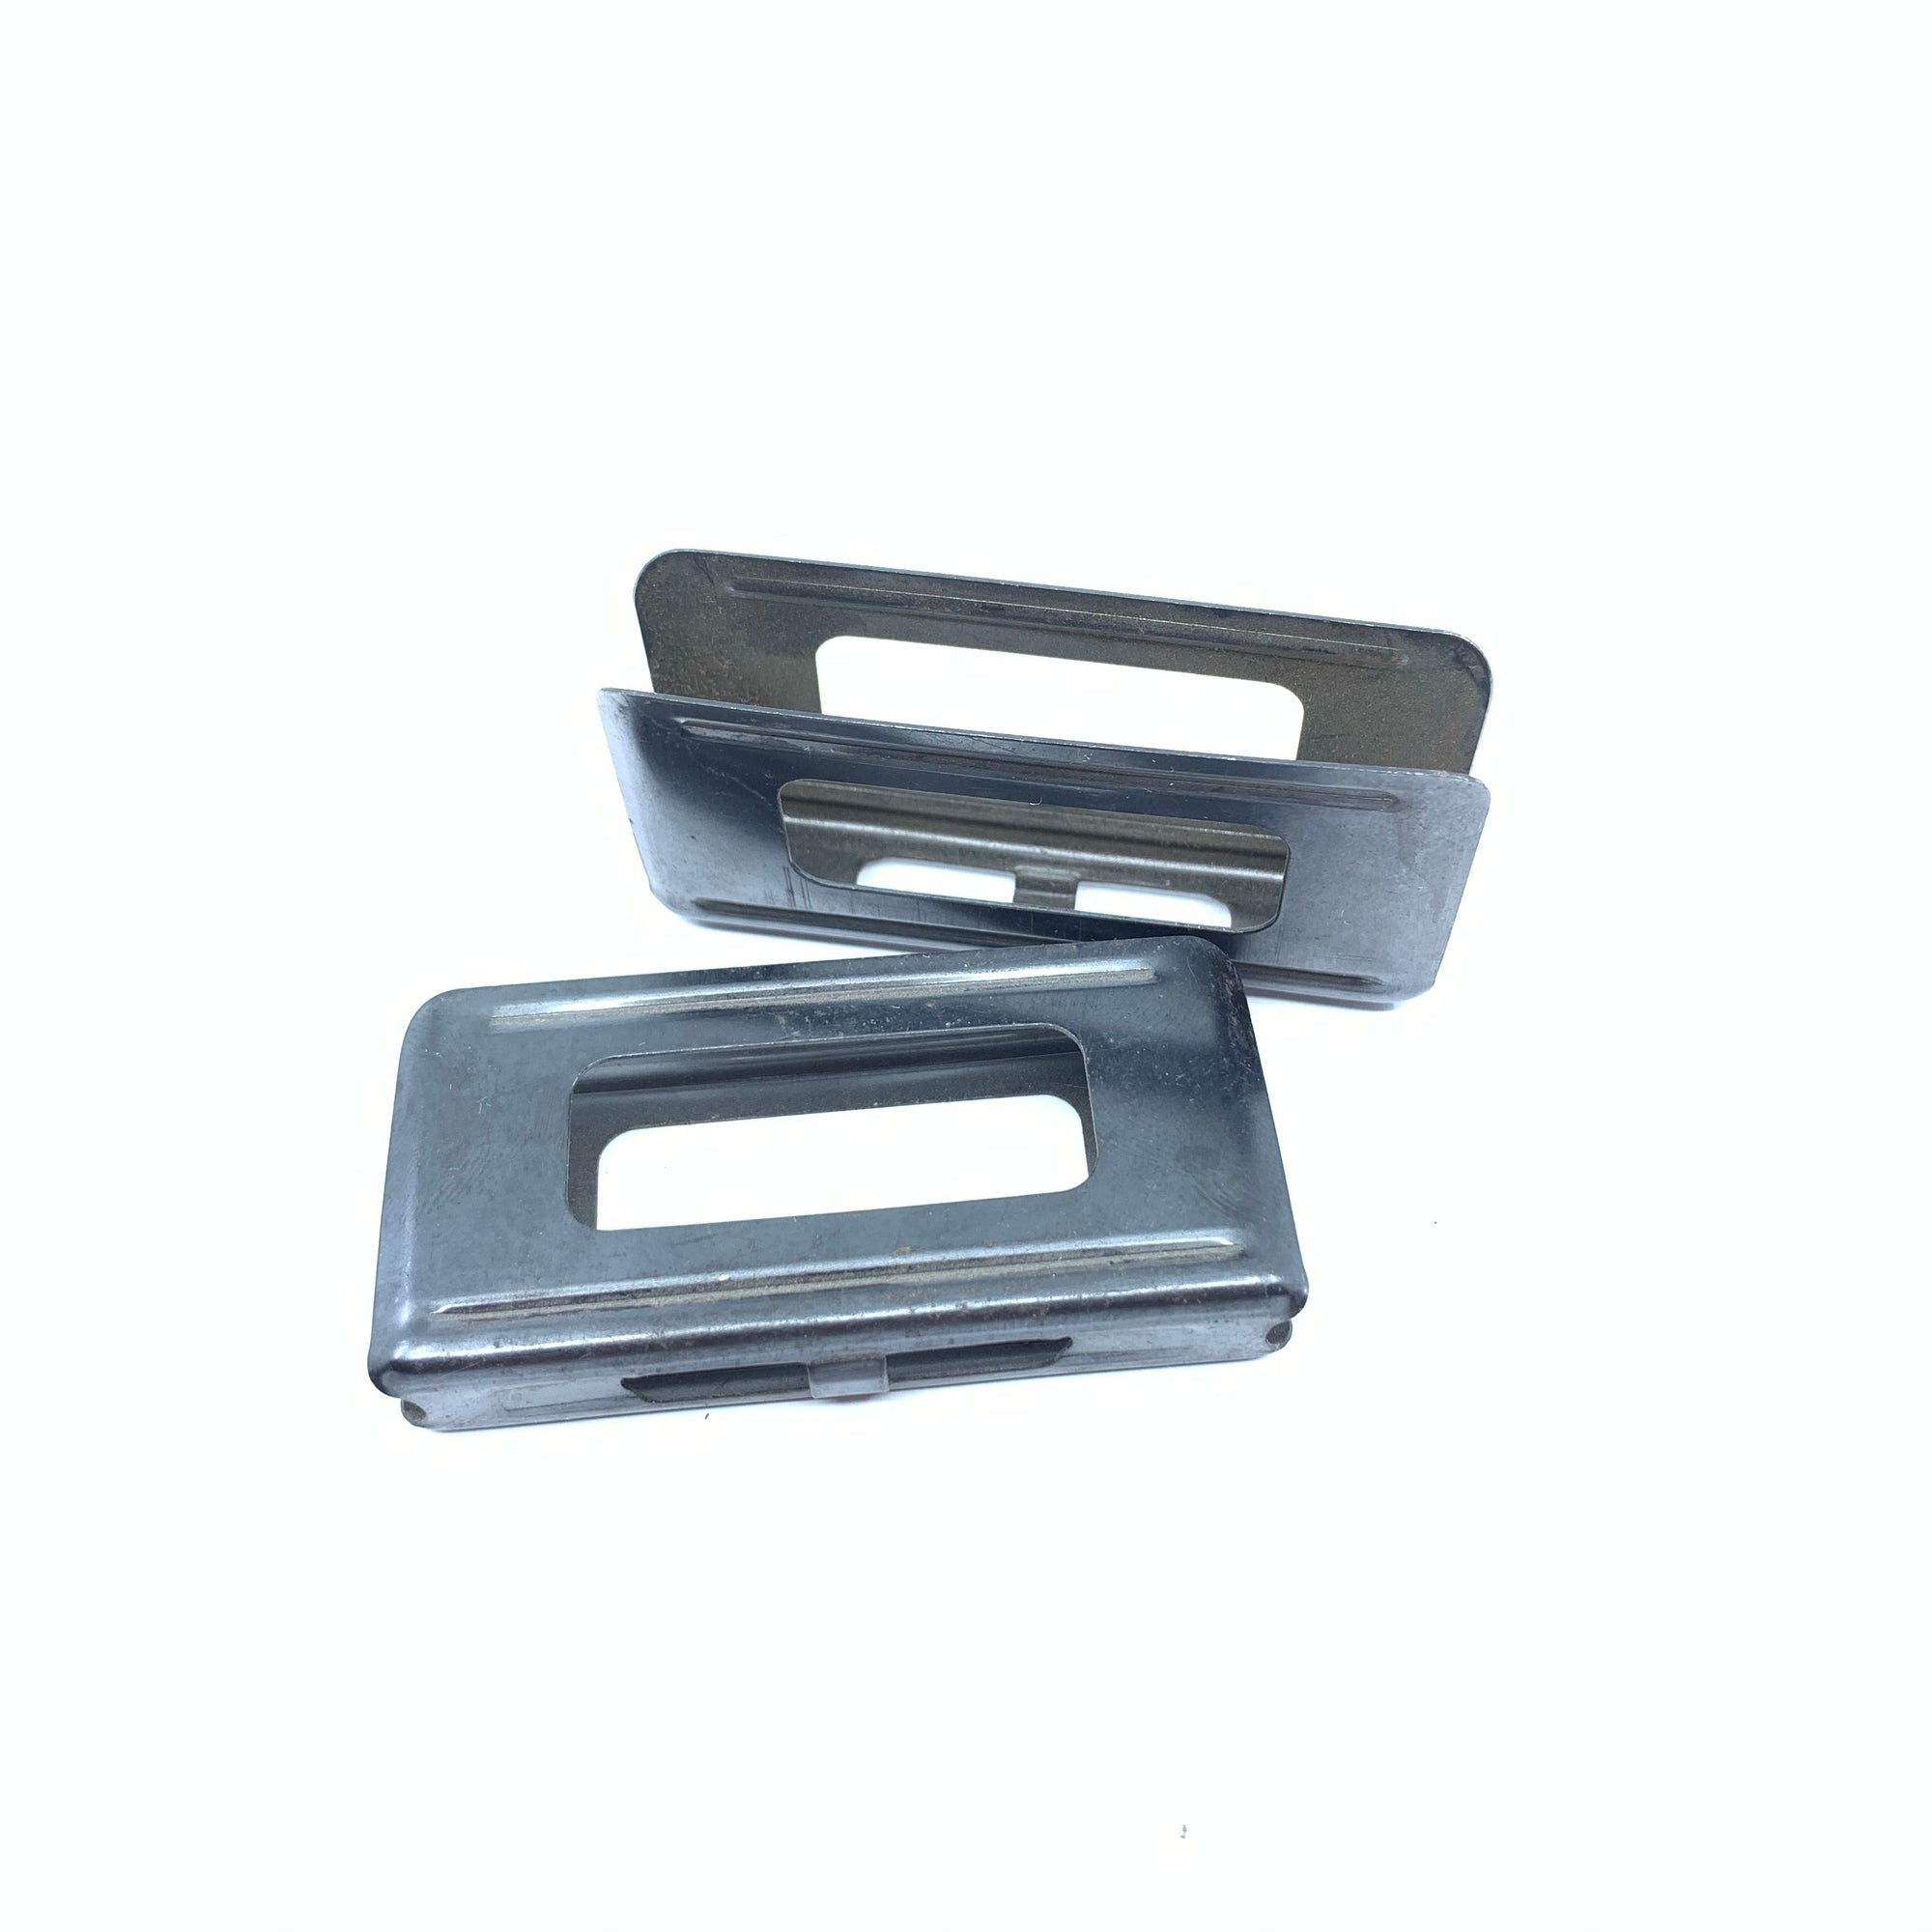 2 - 6.5 Carcano Italian Rifle Stripper Clips